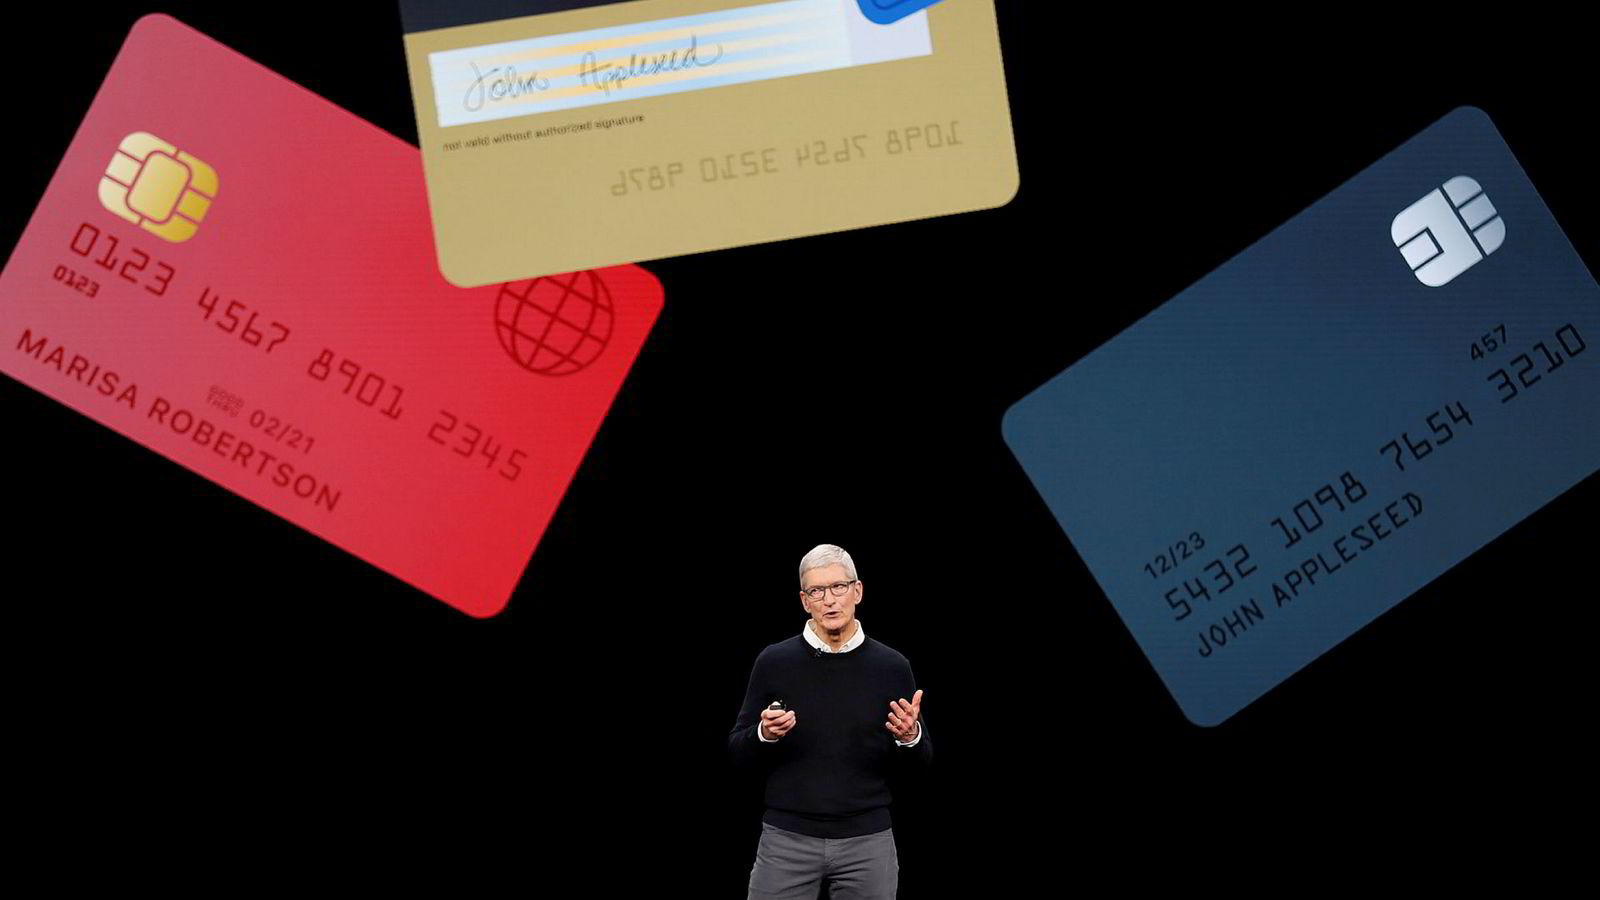 Apple-sjef Tim Cook offentliggjorde Apple Card i San Francisco mandag kveld.